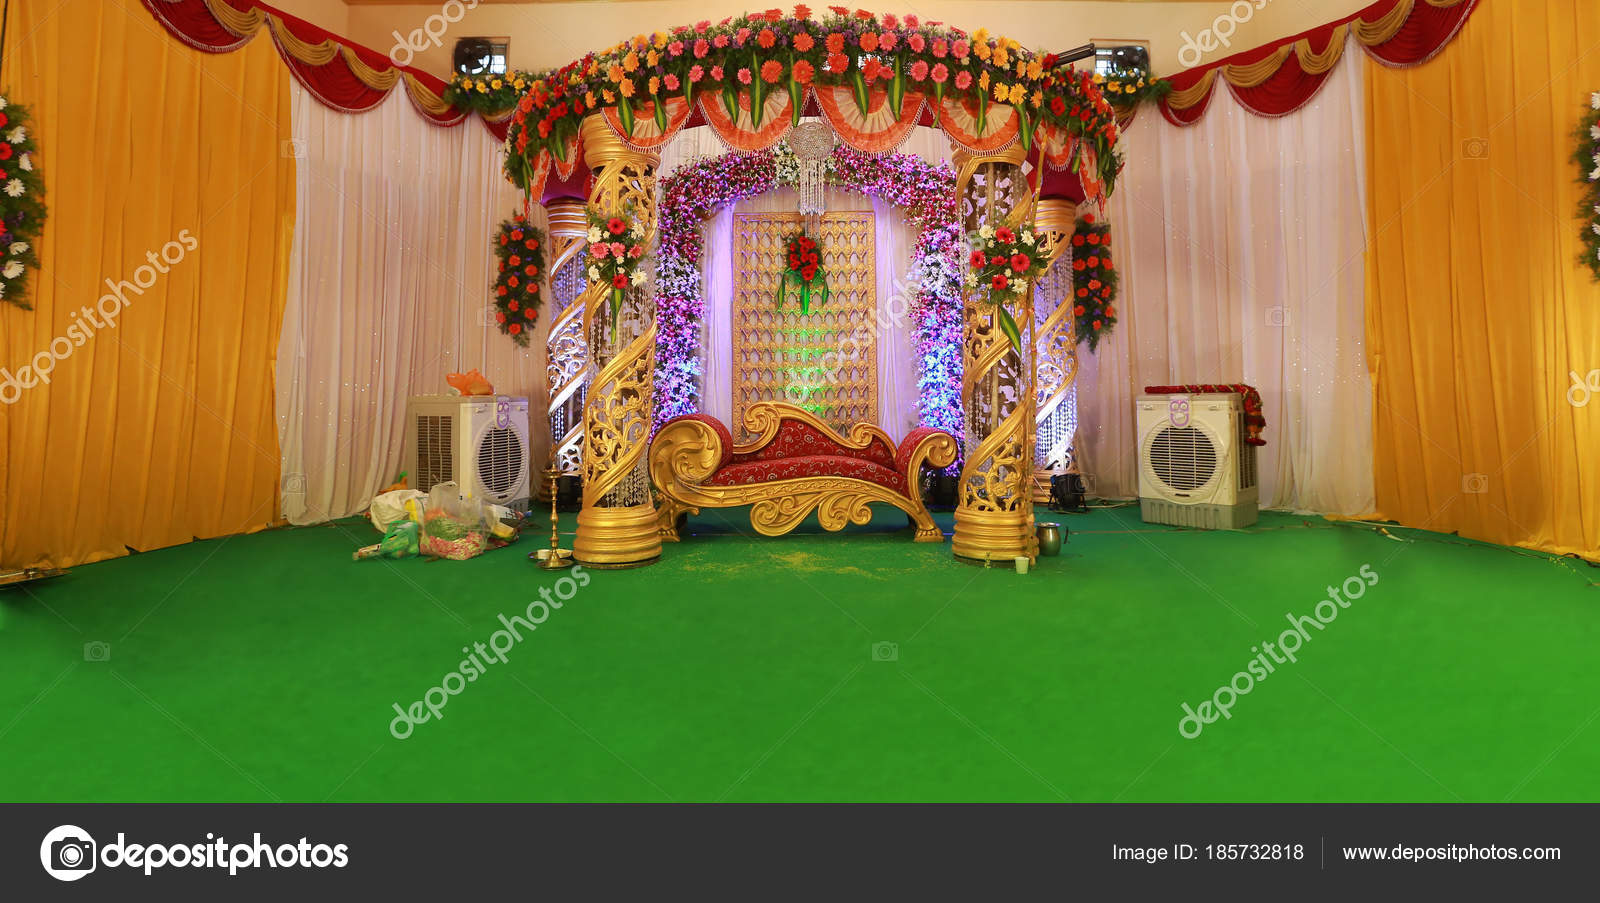 Images: wedding stage backdrop design | Wedding Stage Decoration with  flowers — Stock Photo © avpk #185732818